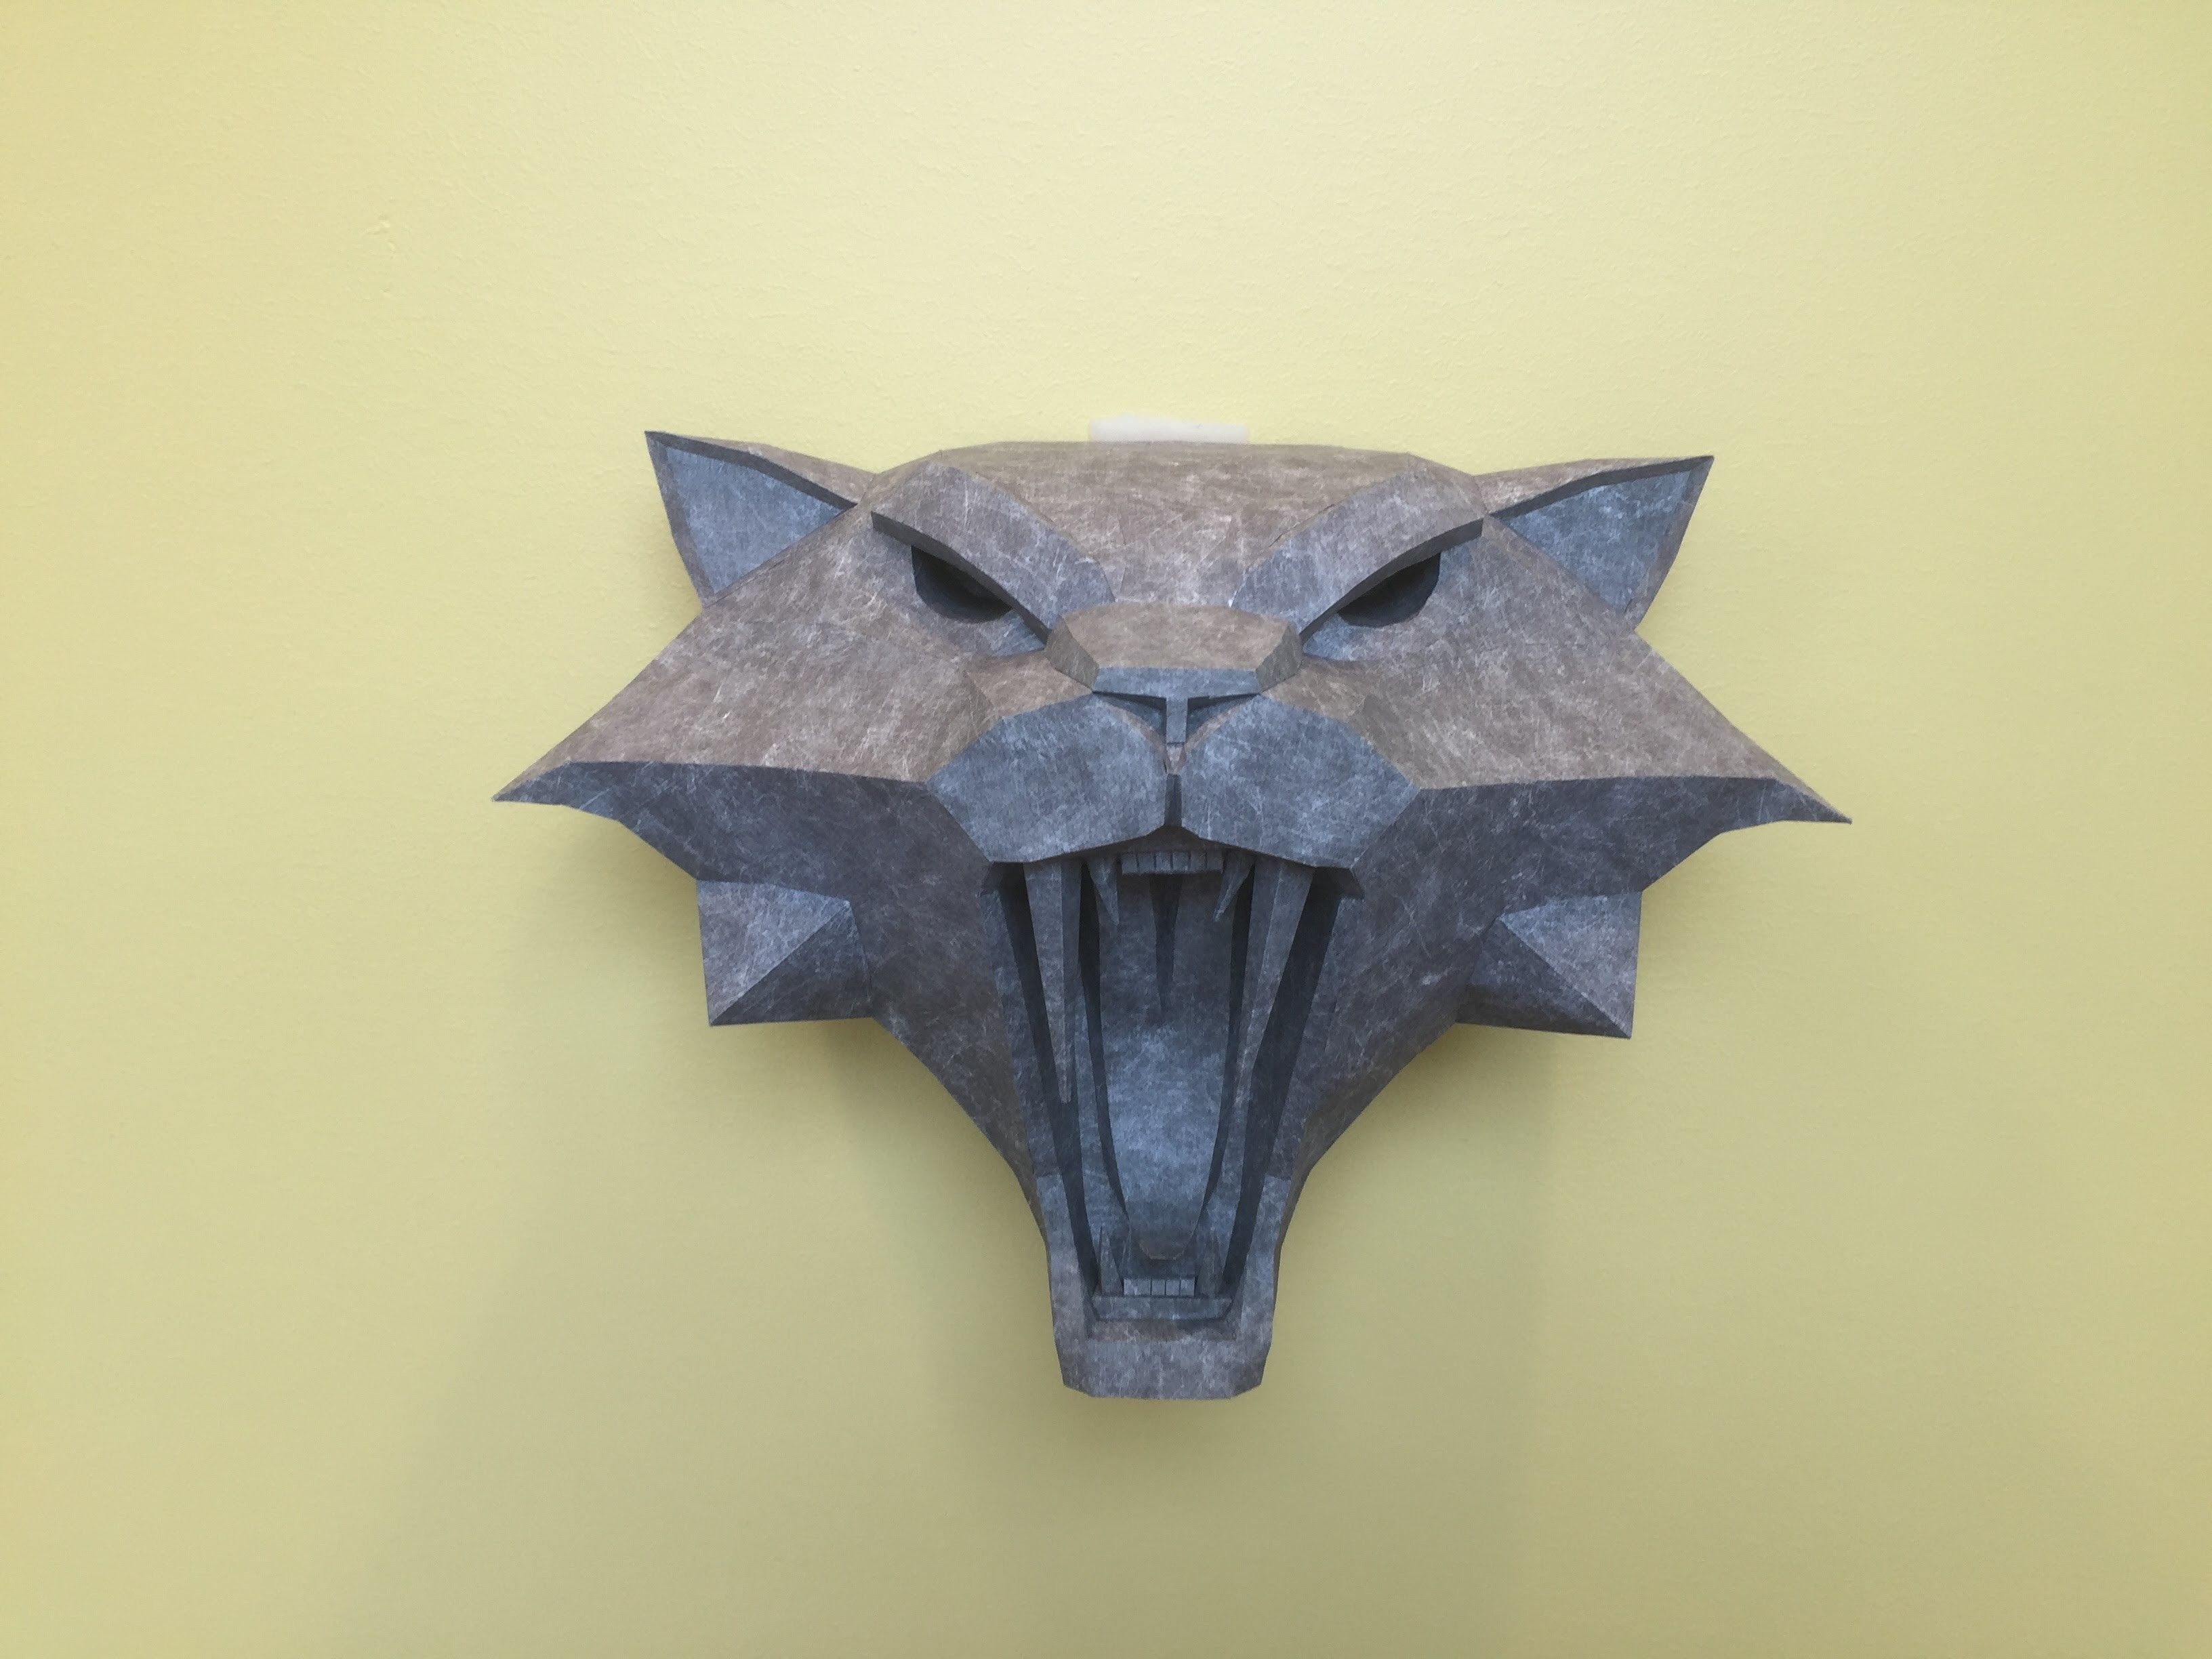 Witcher 3 Papercraft: Cat Medallion Large Size for wall decoration ...